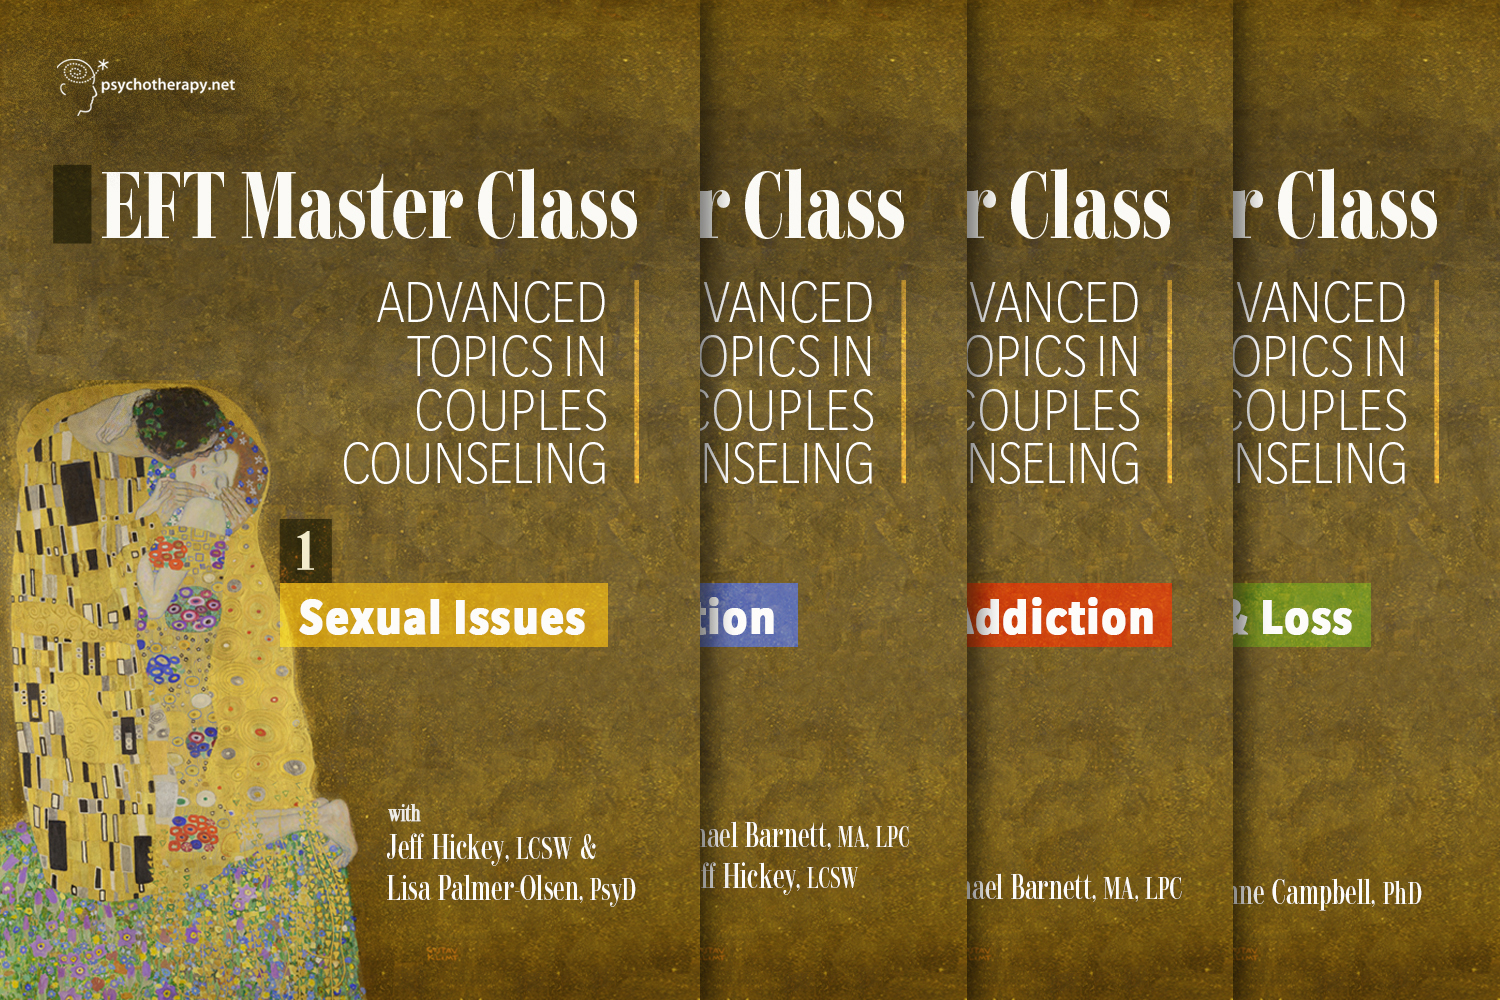 EFT Masterclass: Advanced Topics in Couples Counseling: 4-video series